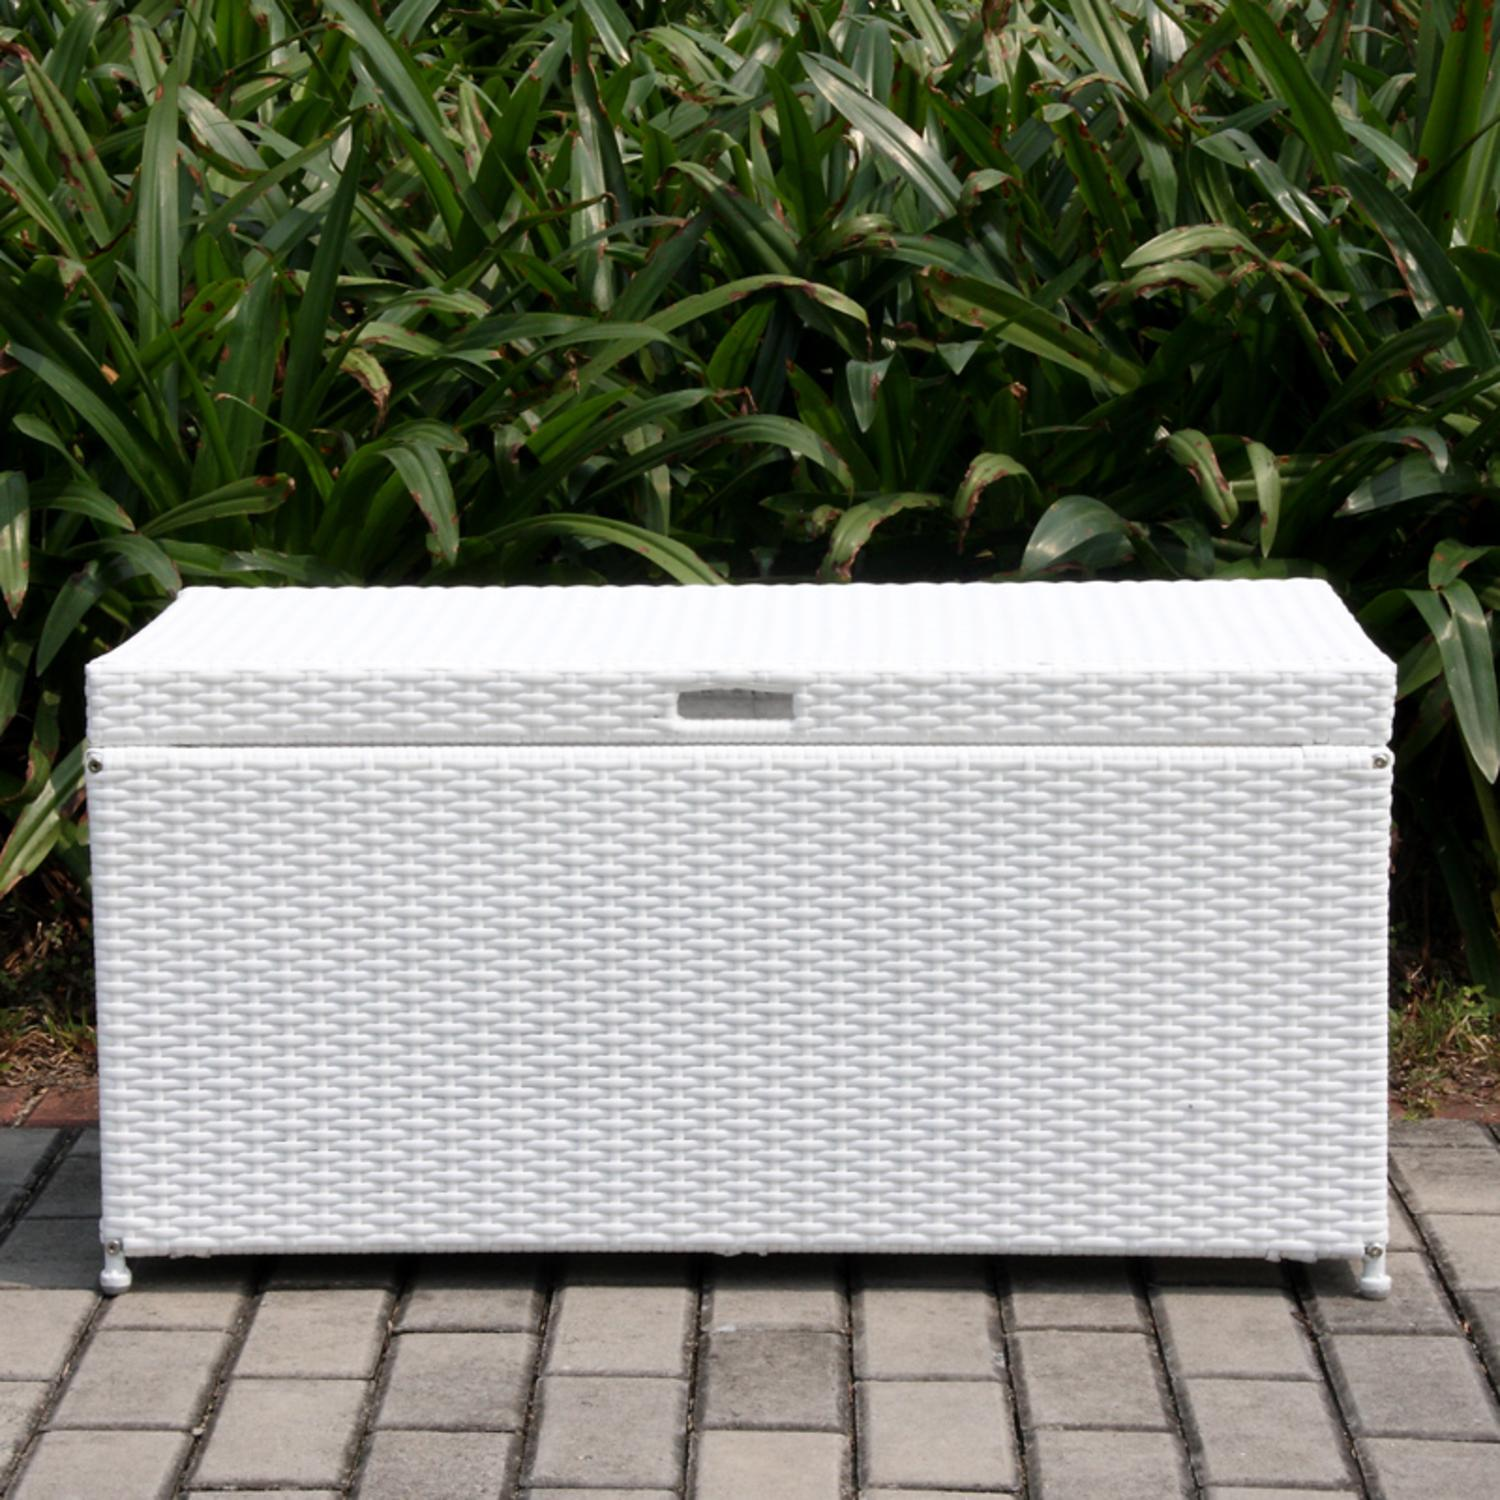 "40"" White Resin Wicker Outdoor Patio Garden Hinged Lidded Storage Deck Box"